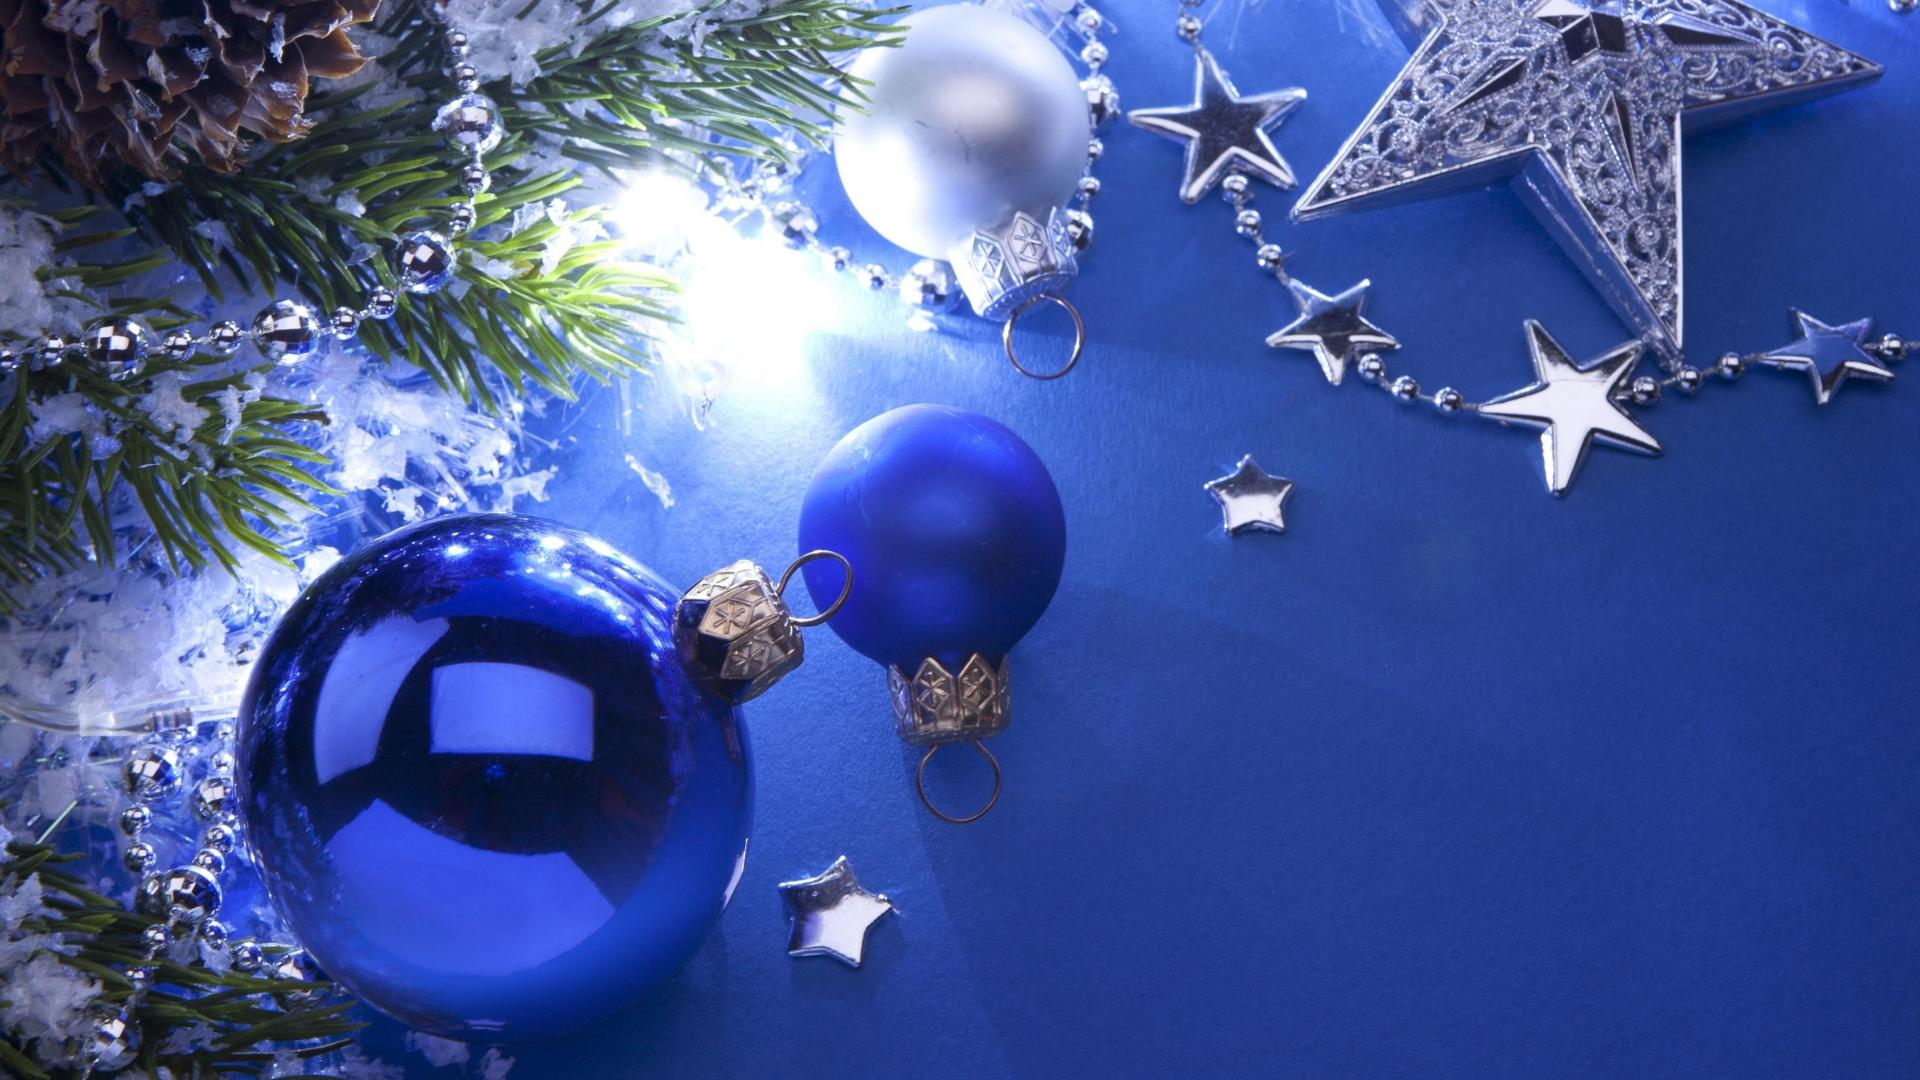 Christmas Background Hd.Blue Christmas Background Full Hd Blackmore And Roy Perth Wa